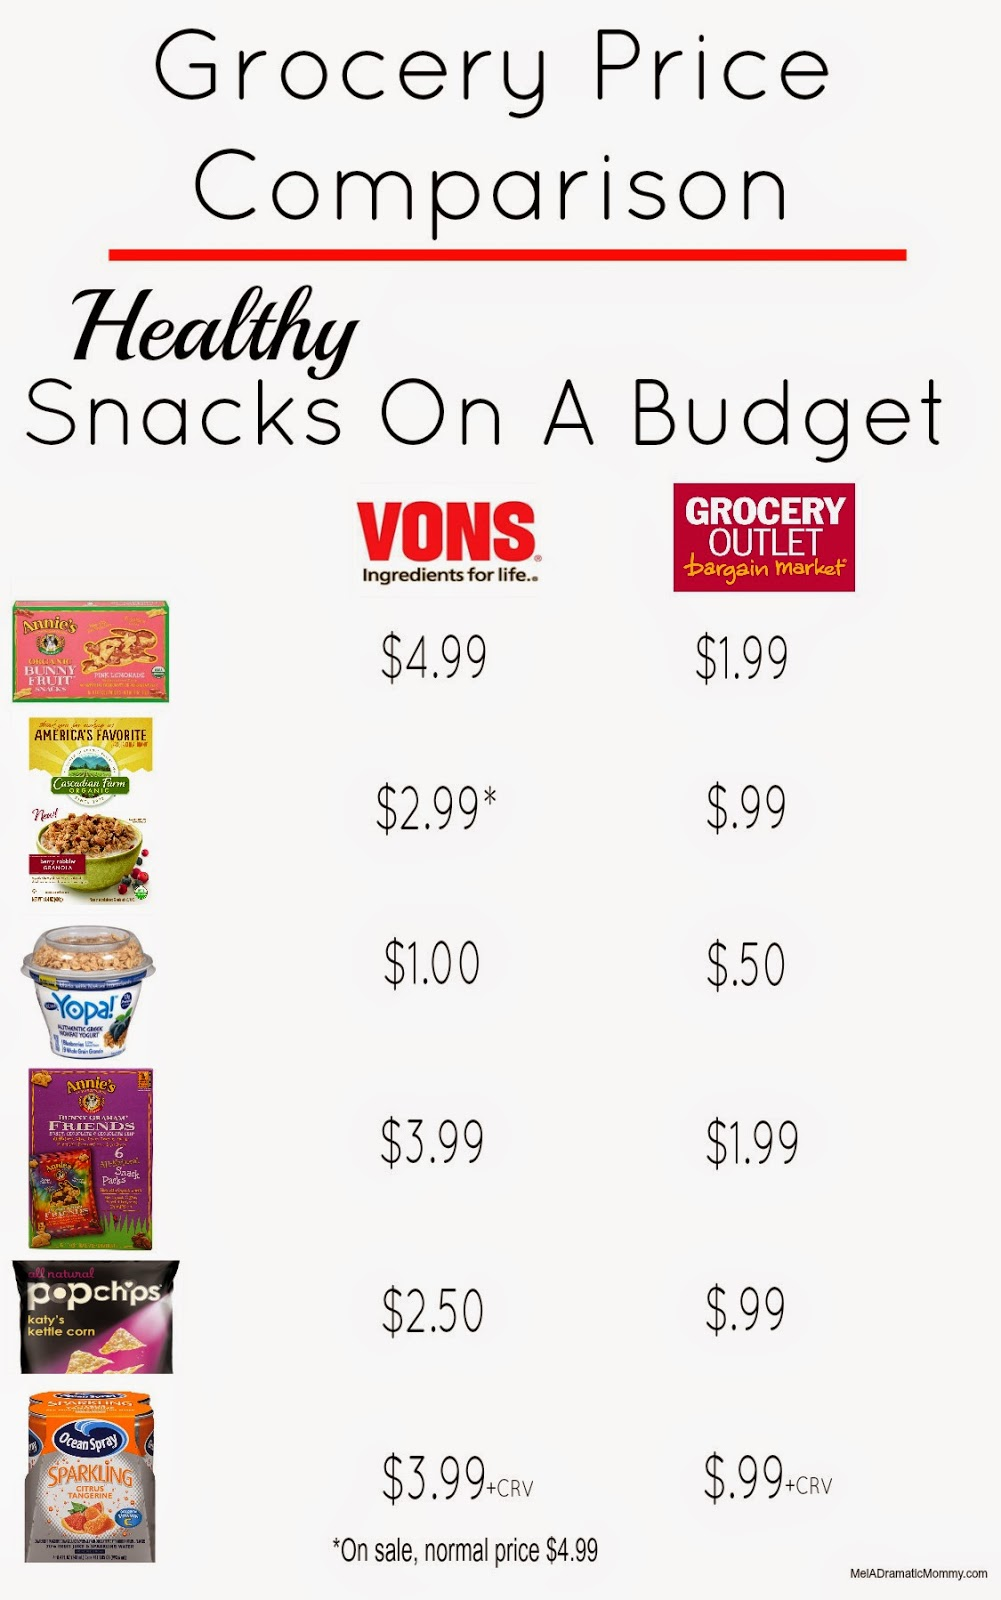 Grocery-Price-Comparison-Vons-Grocery-Outlet